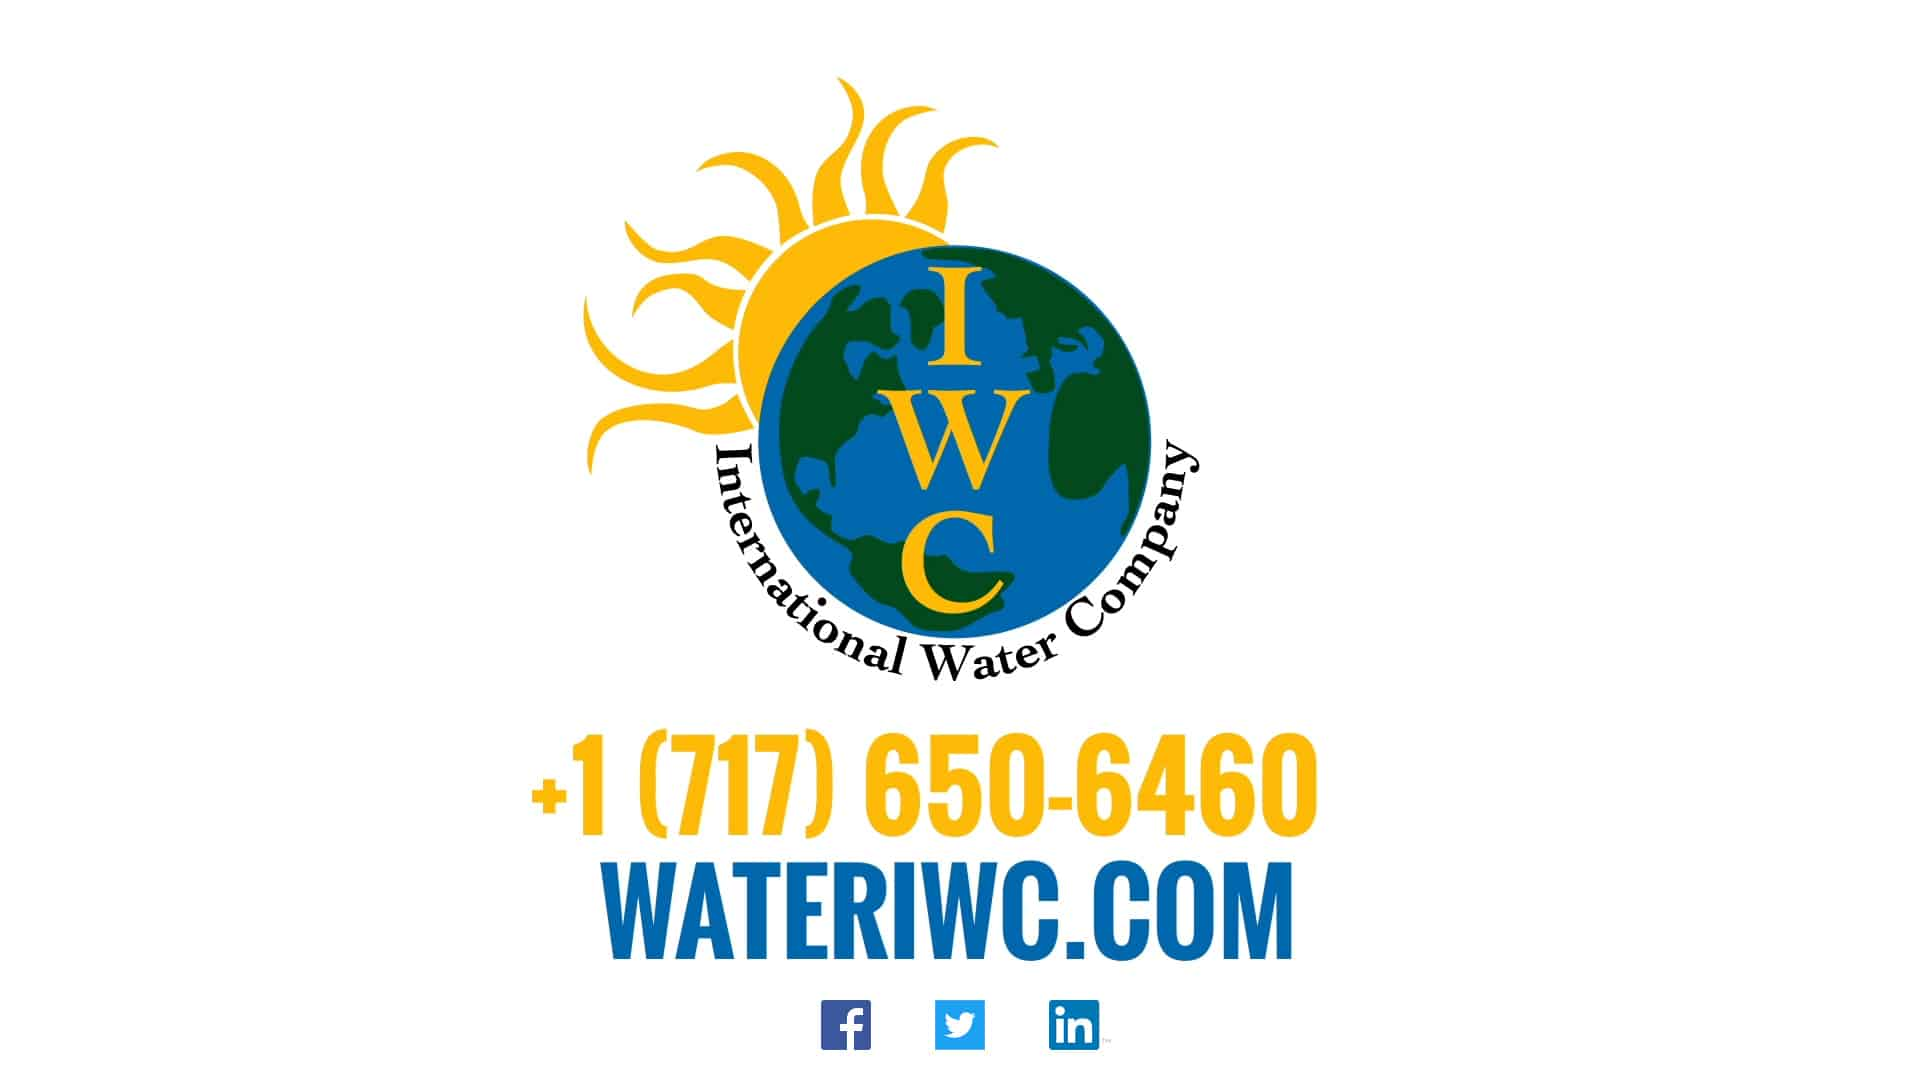 International Water Company- Mobile Water Purification System